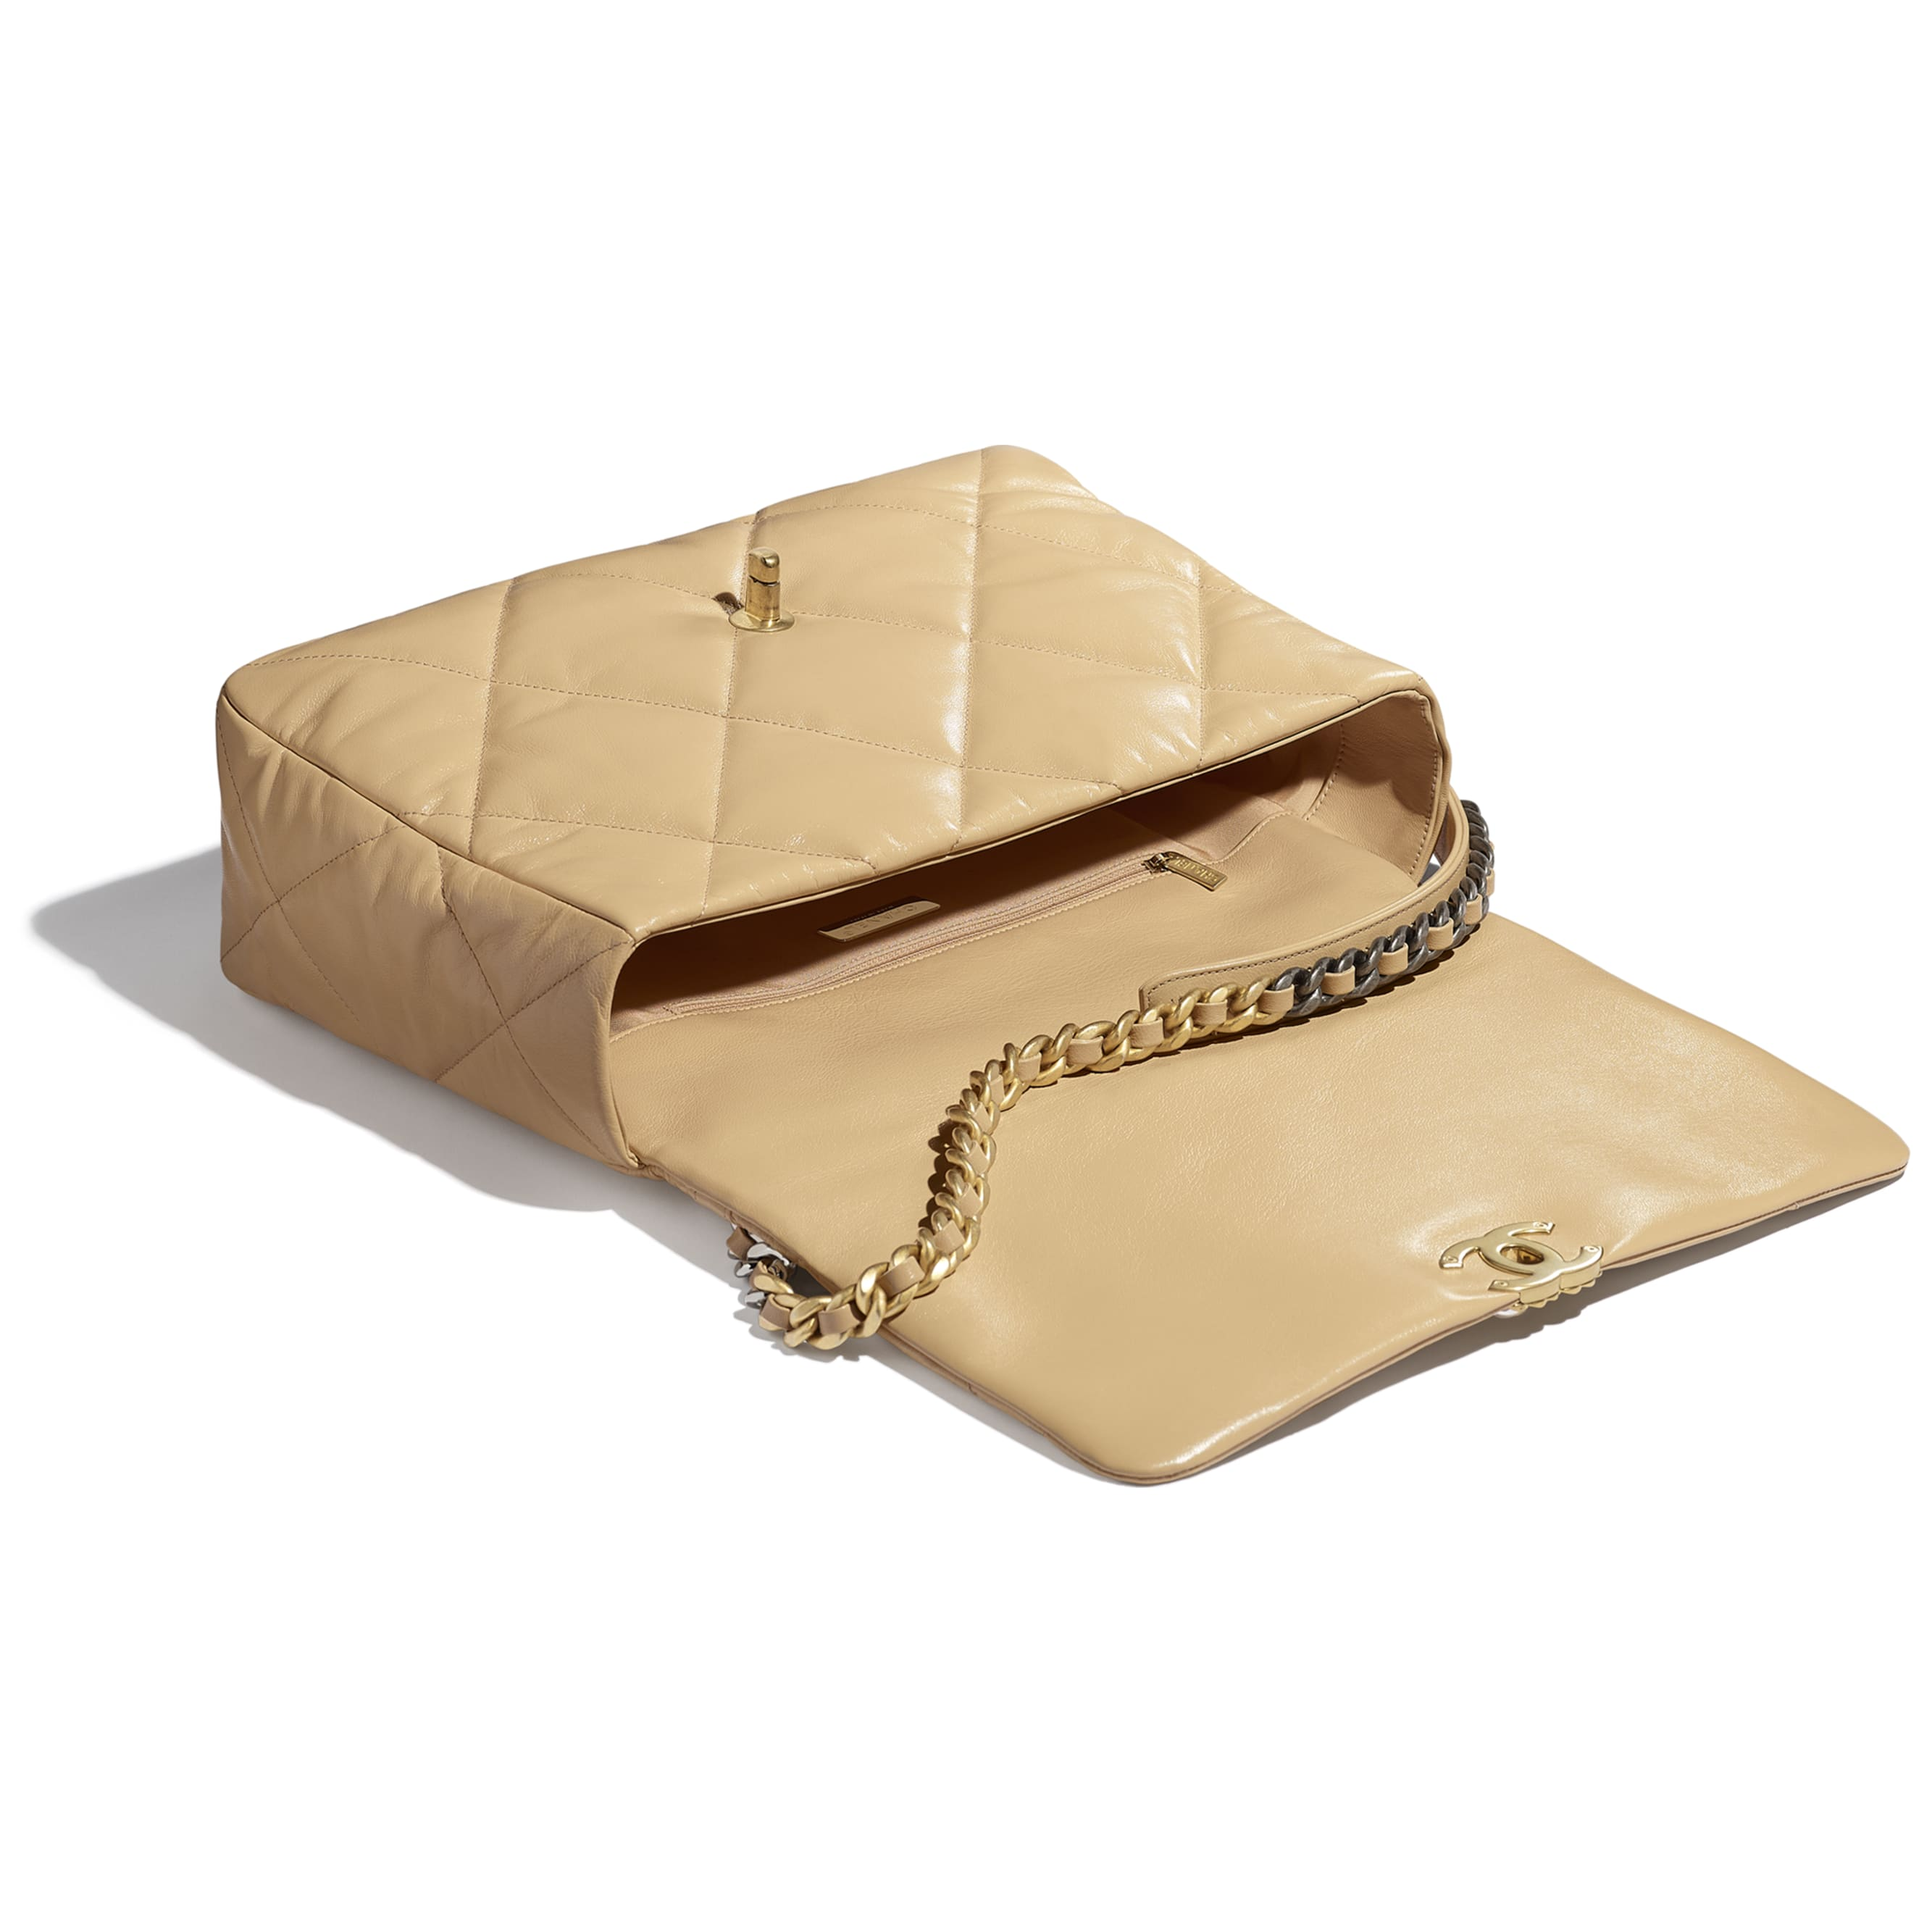 CHANEL 19 Maxi Flap Bag - Beige - Shiny Goatskin, Gold-Tone, Silver-Tone & Ruthenium-Finish Metal - CHANEL - Other view - see standard sized version